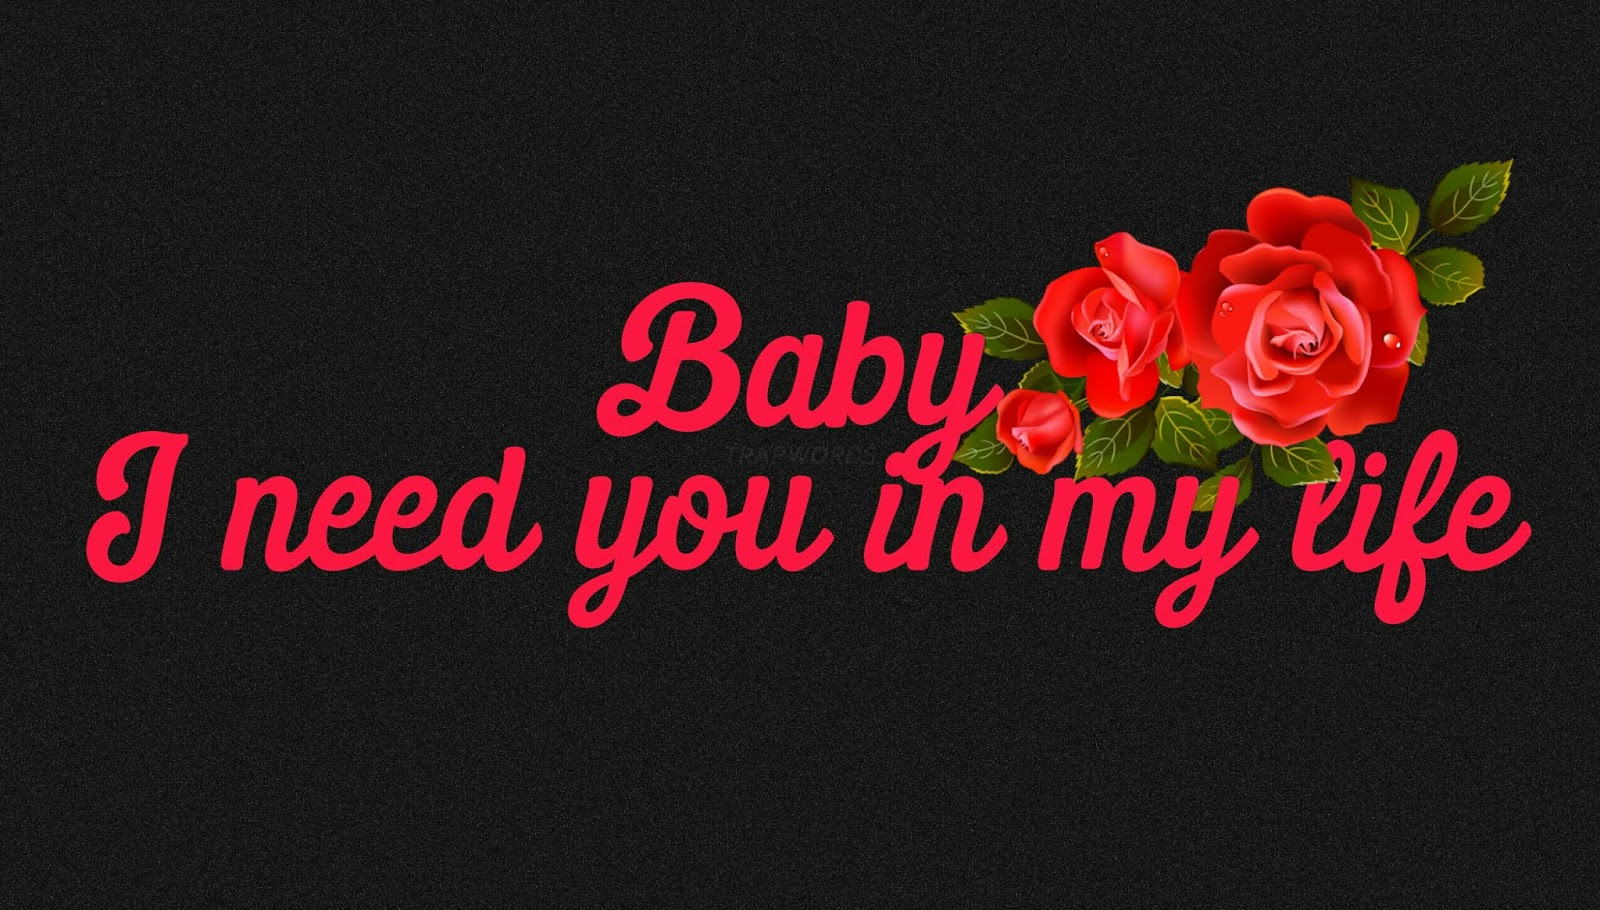 Baby i need you in my life